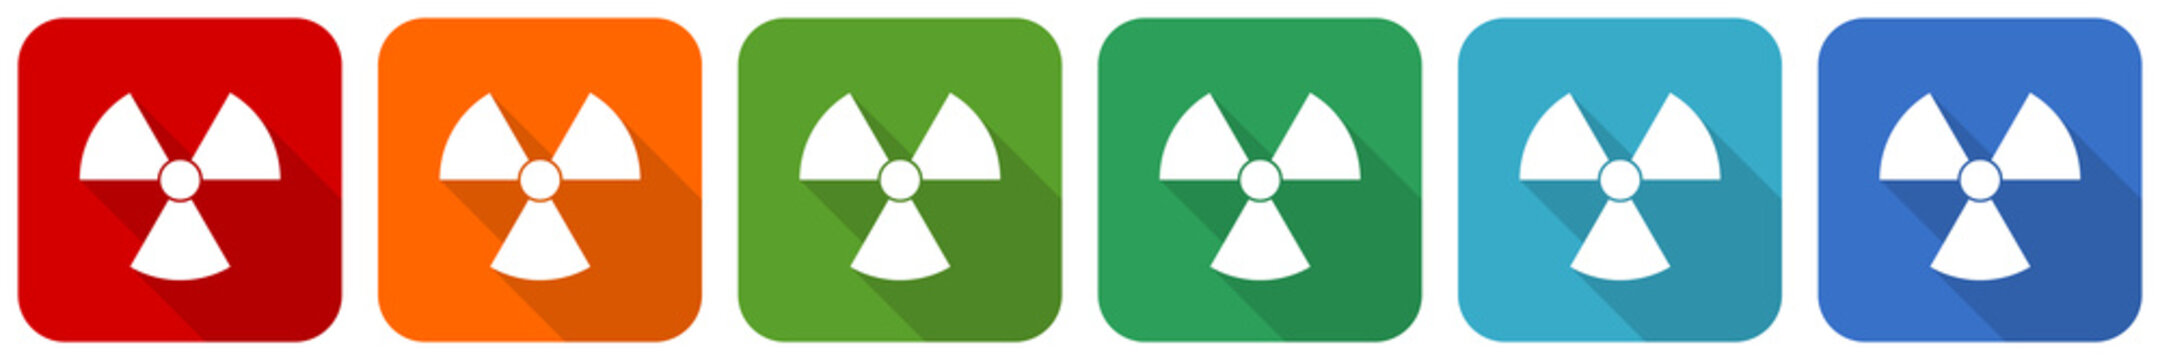 Radiation icon set, flat design vector illustration in 6 colors options for webdesign and mobile applications